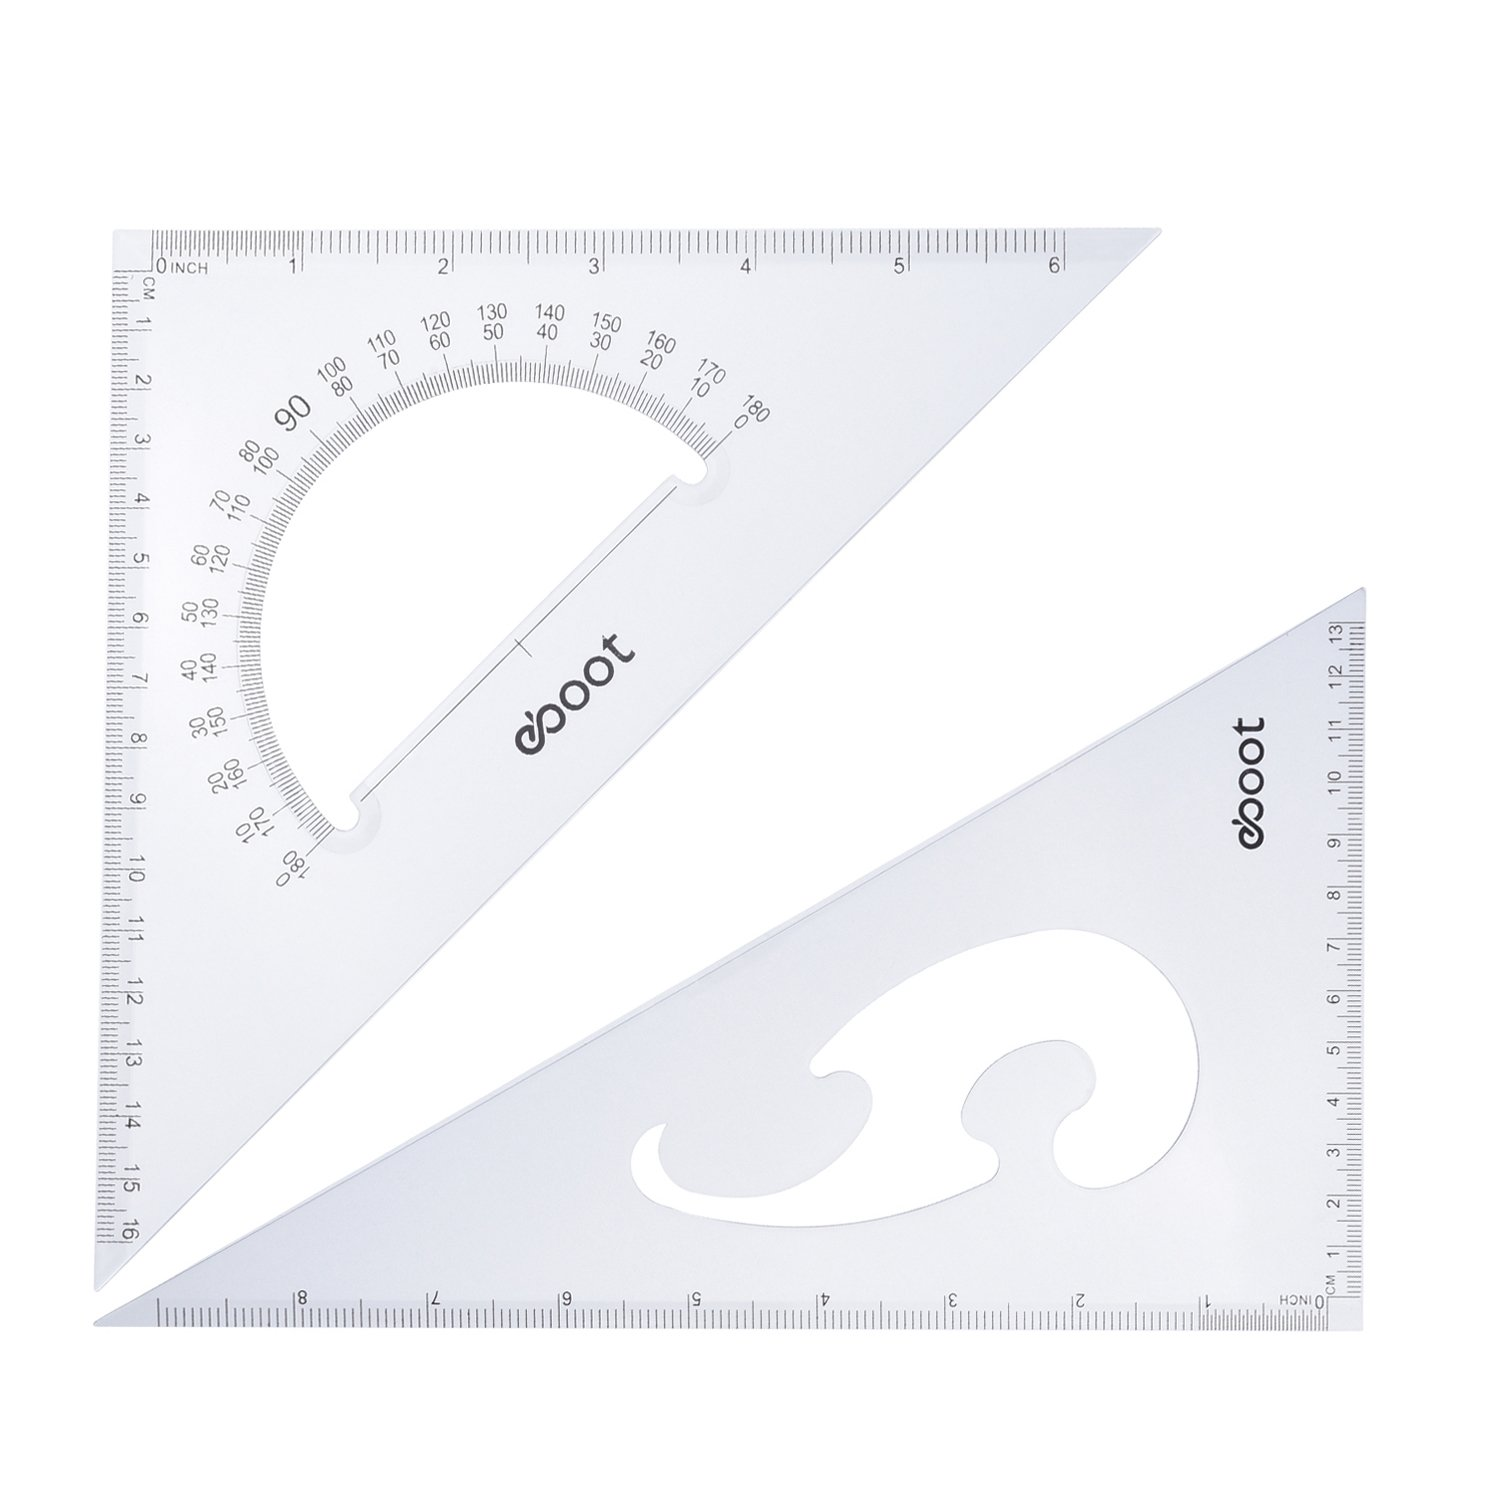 eBoot Large Triangle Ruler Square Set, 30/60 and 45/90 Degrees, Set of 2 by eBoot (Image #2)